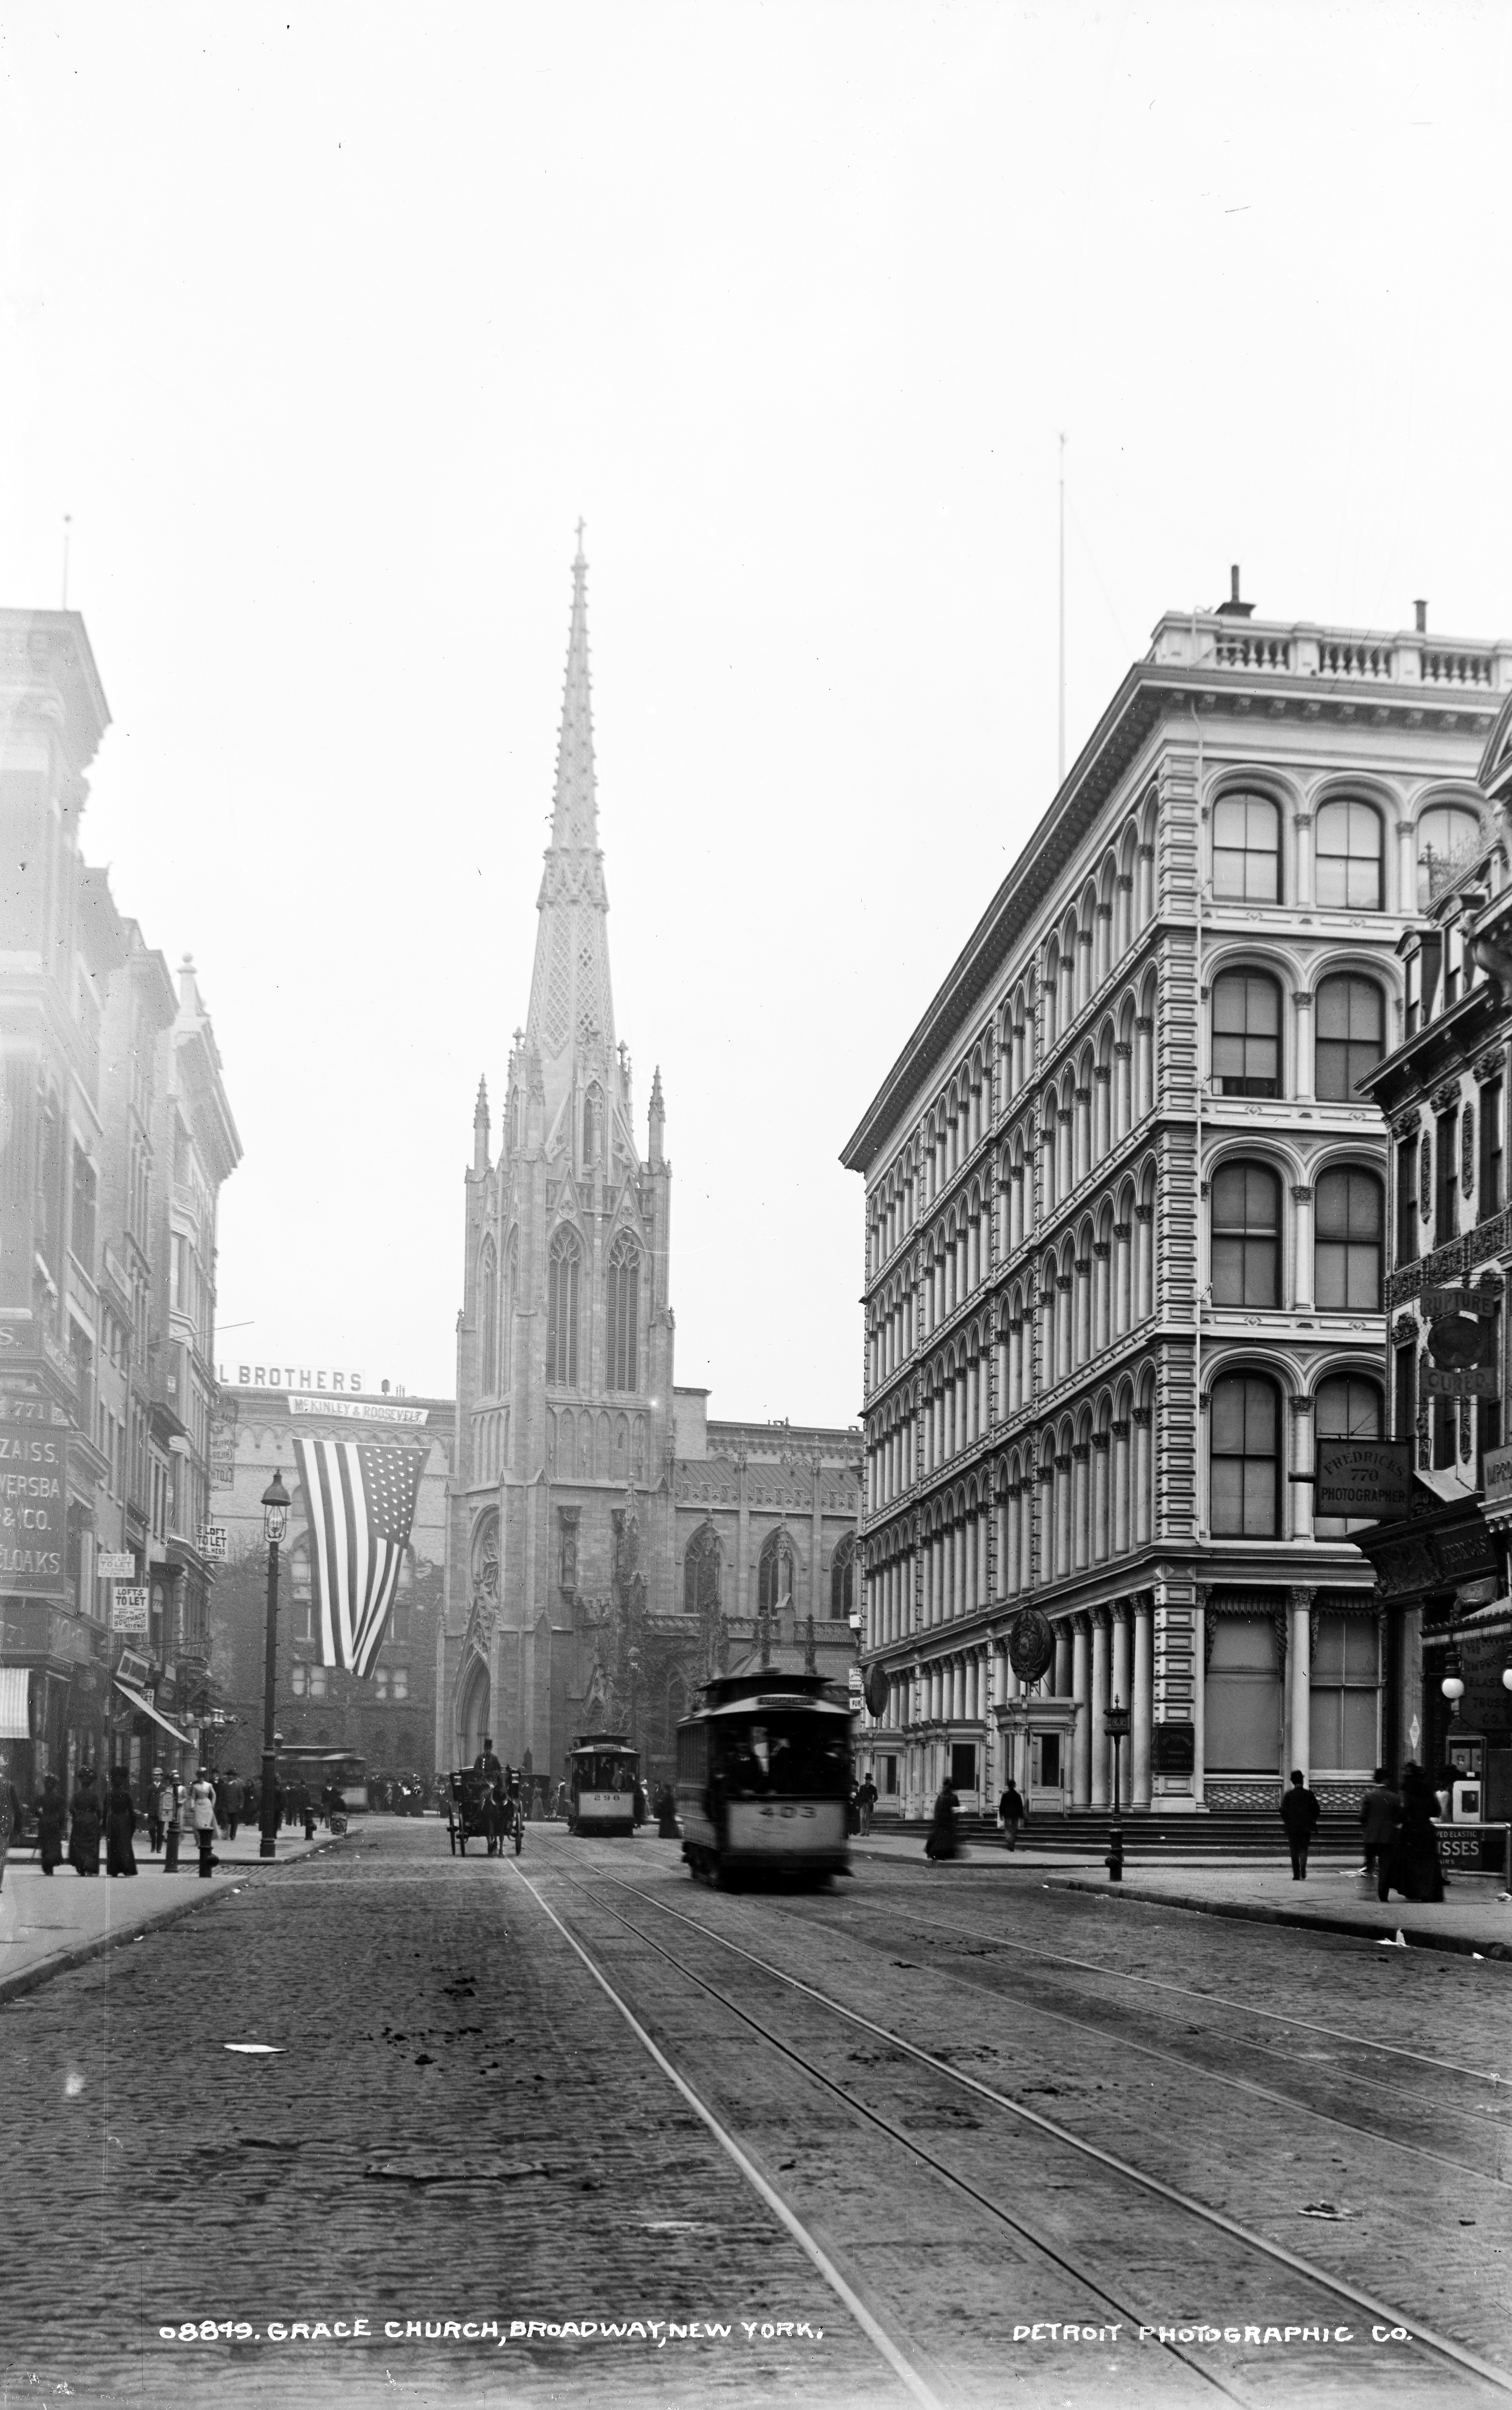 vintage photograph shows grace church in greenwich village